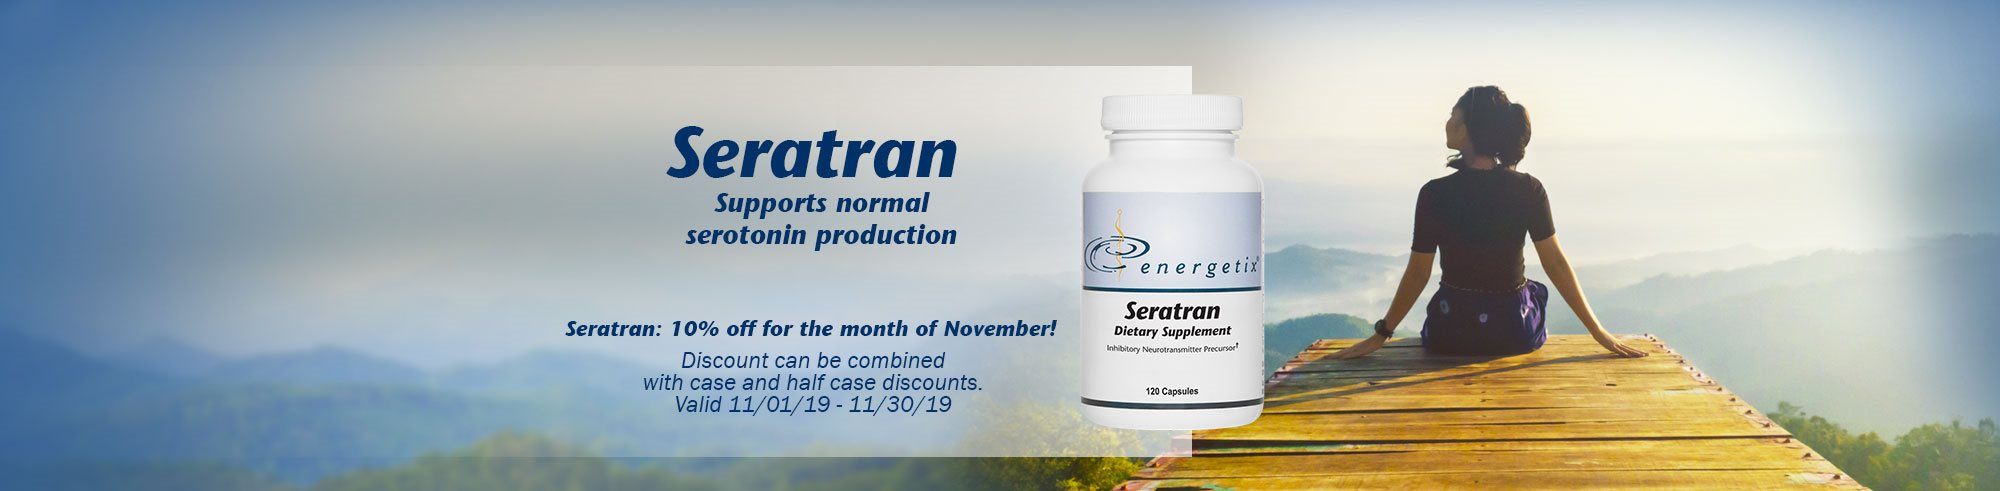 Seratran is November's Product of the month